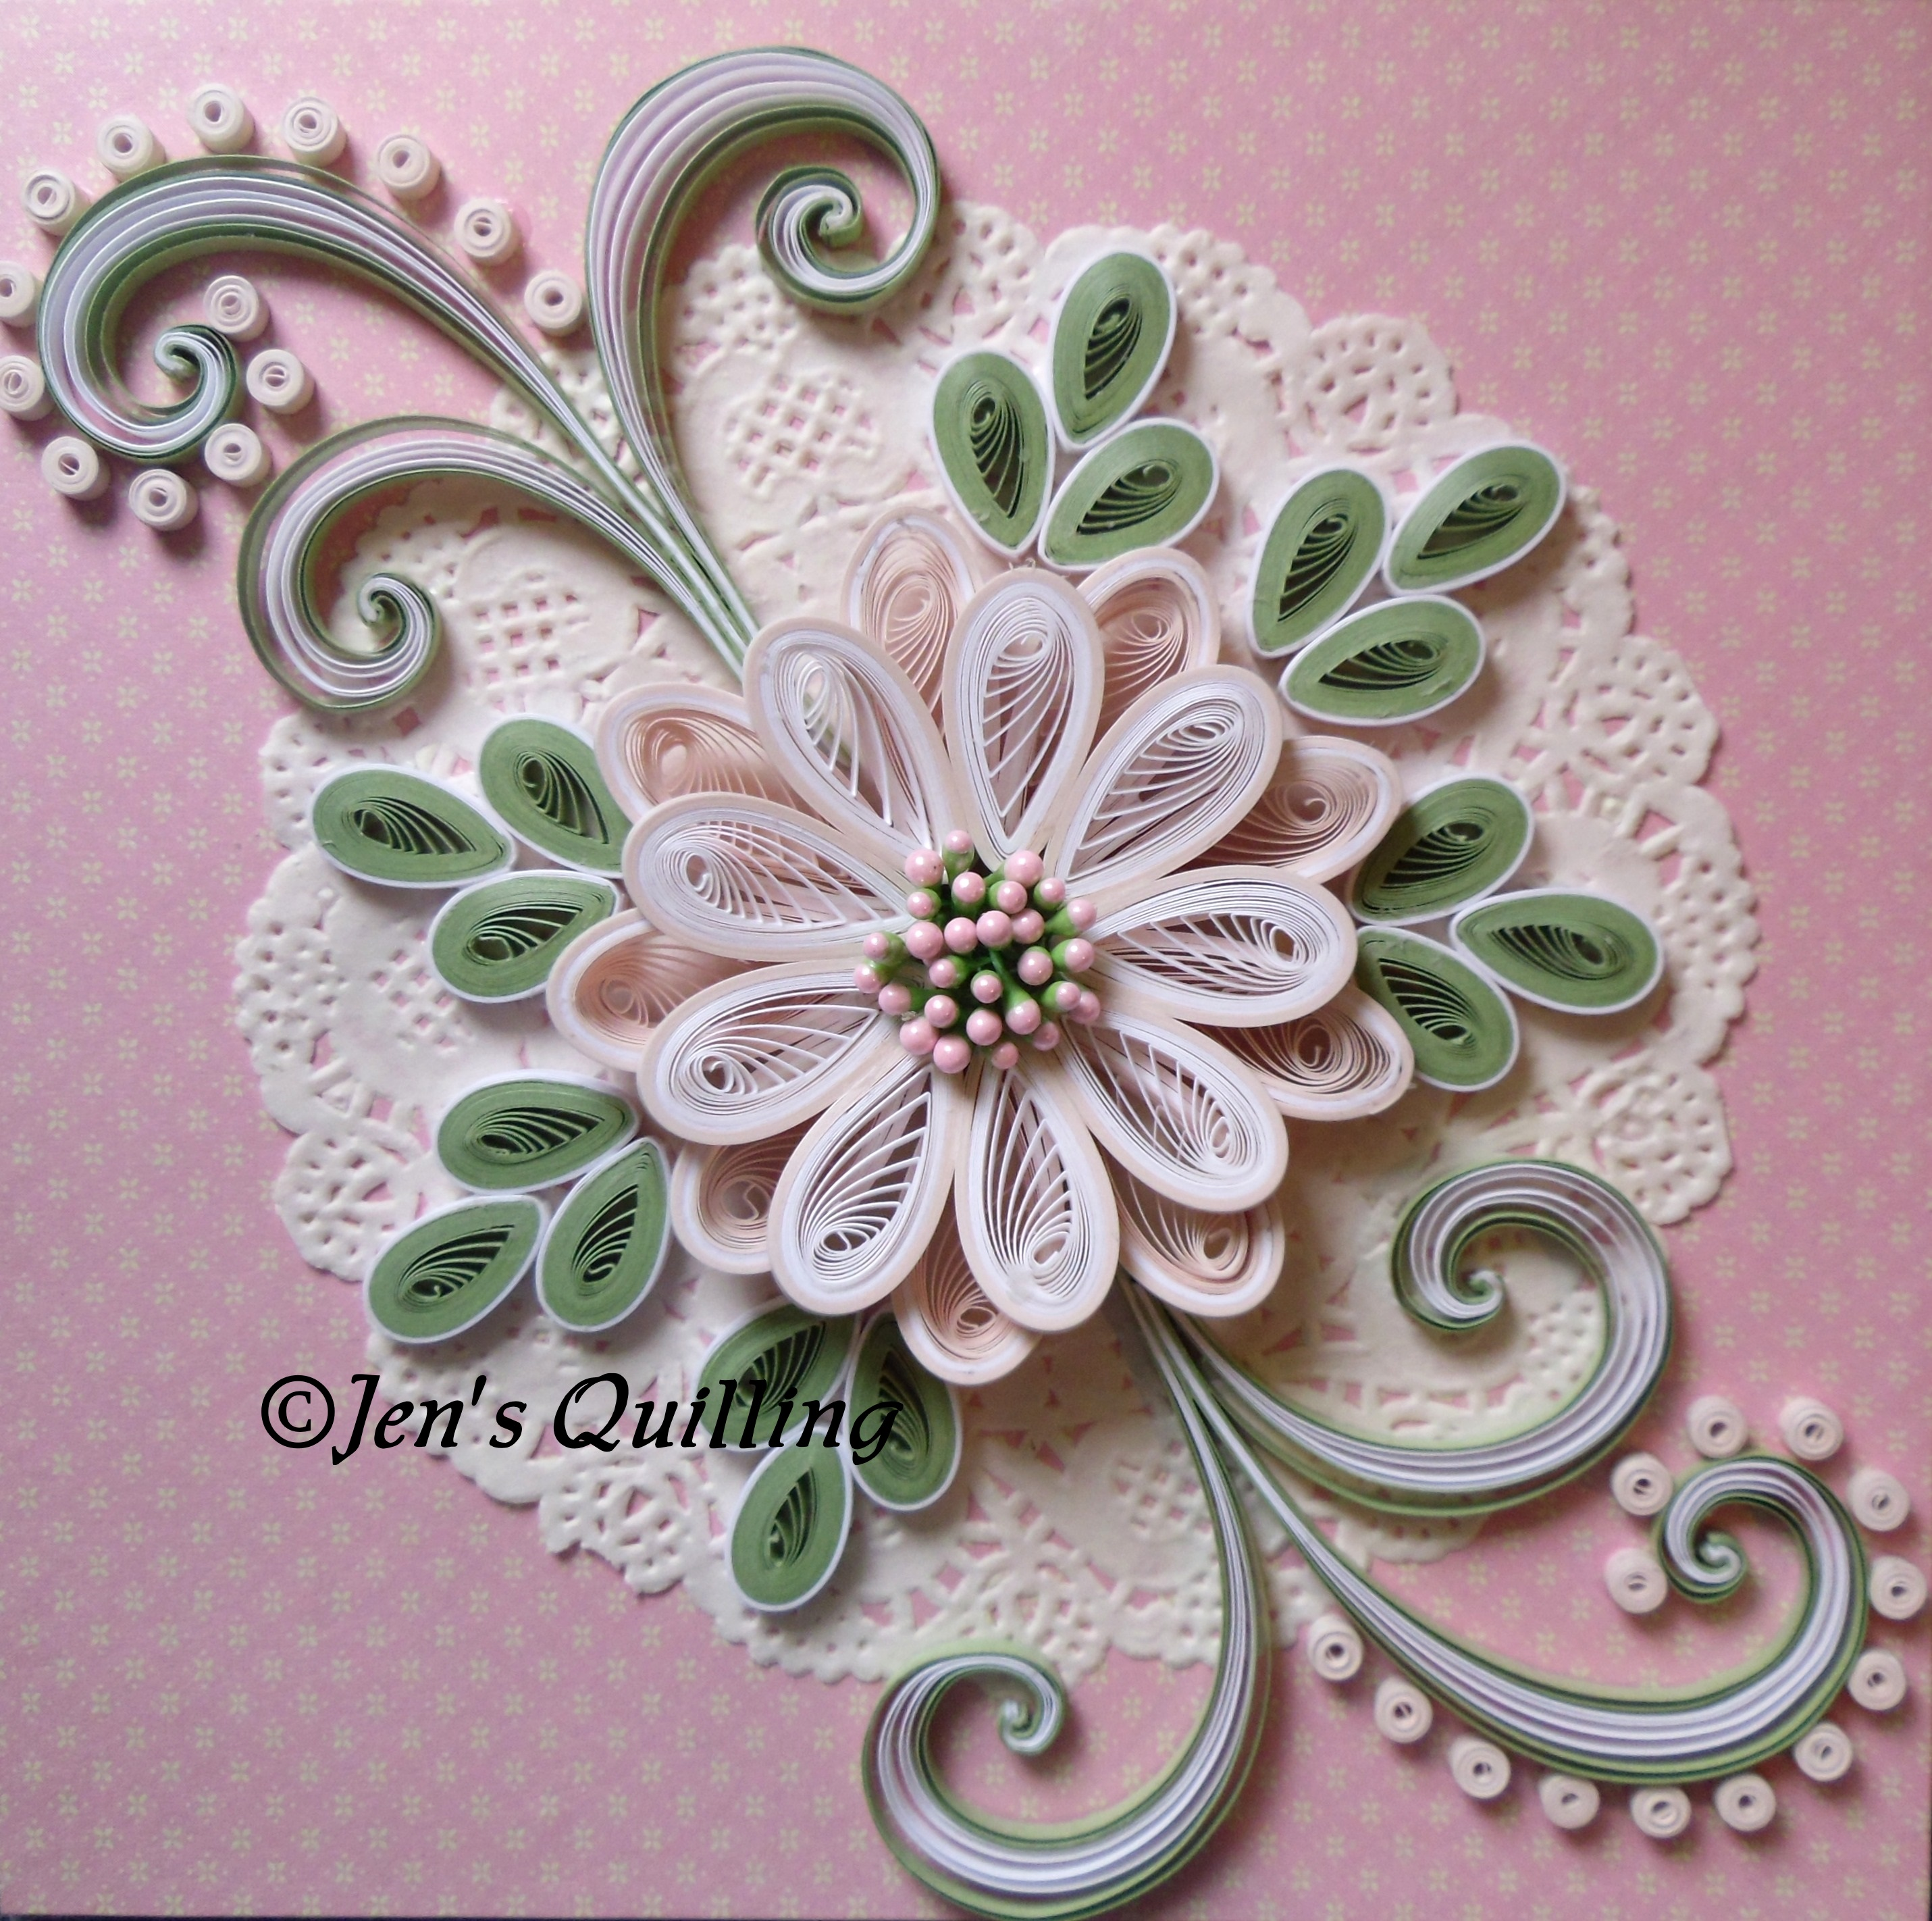 Lovely-Quilled-Floral-design-on-a-doily-by-Jen-s-Quilling-wallpaper-wp5208955-1